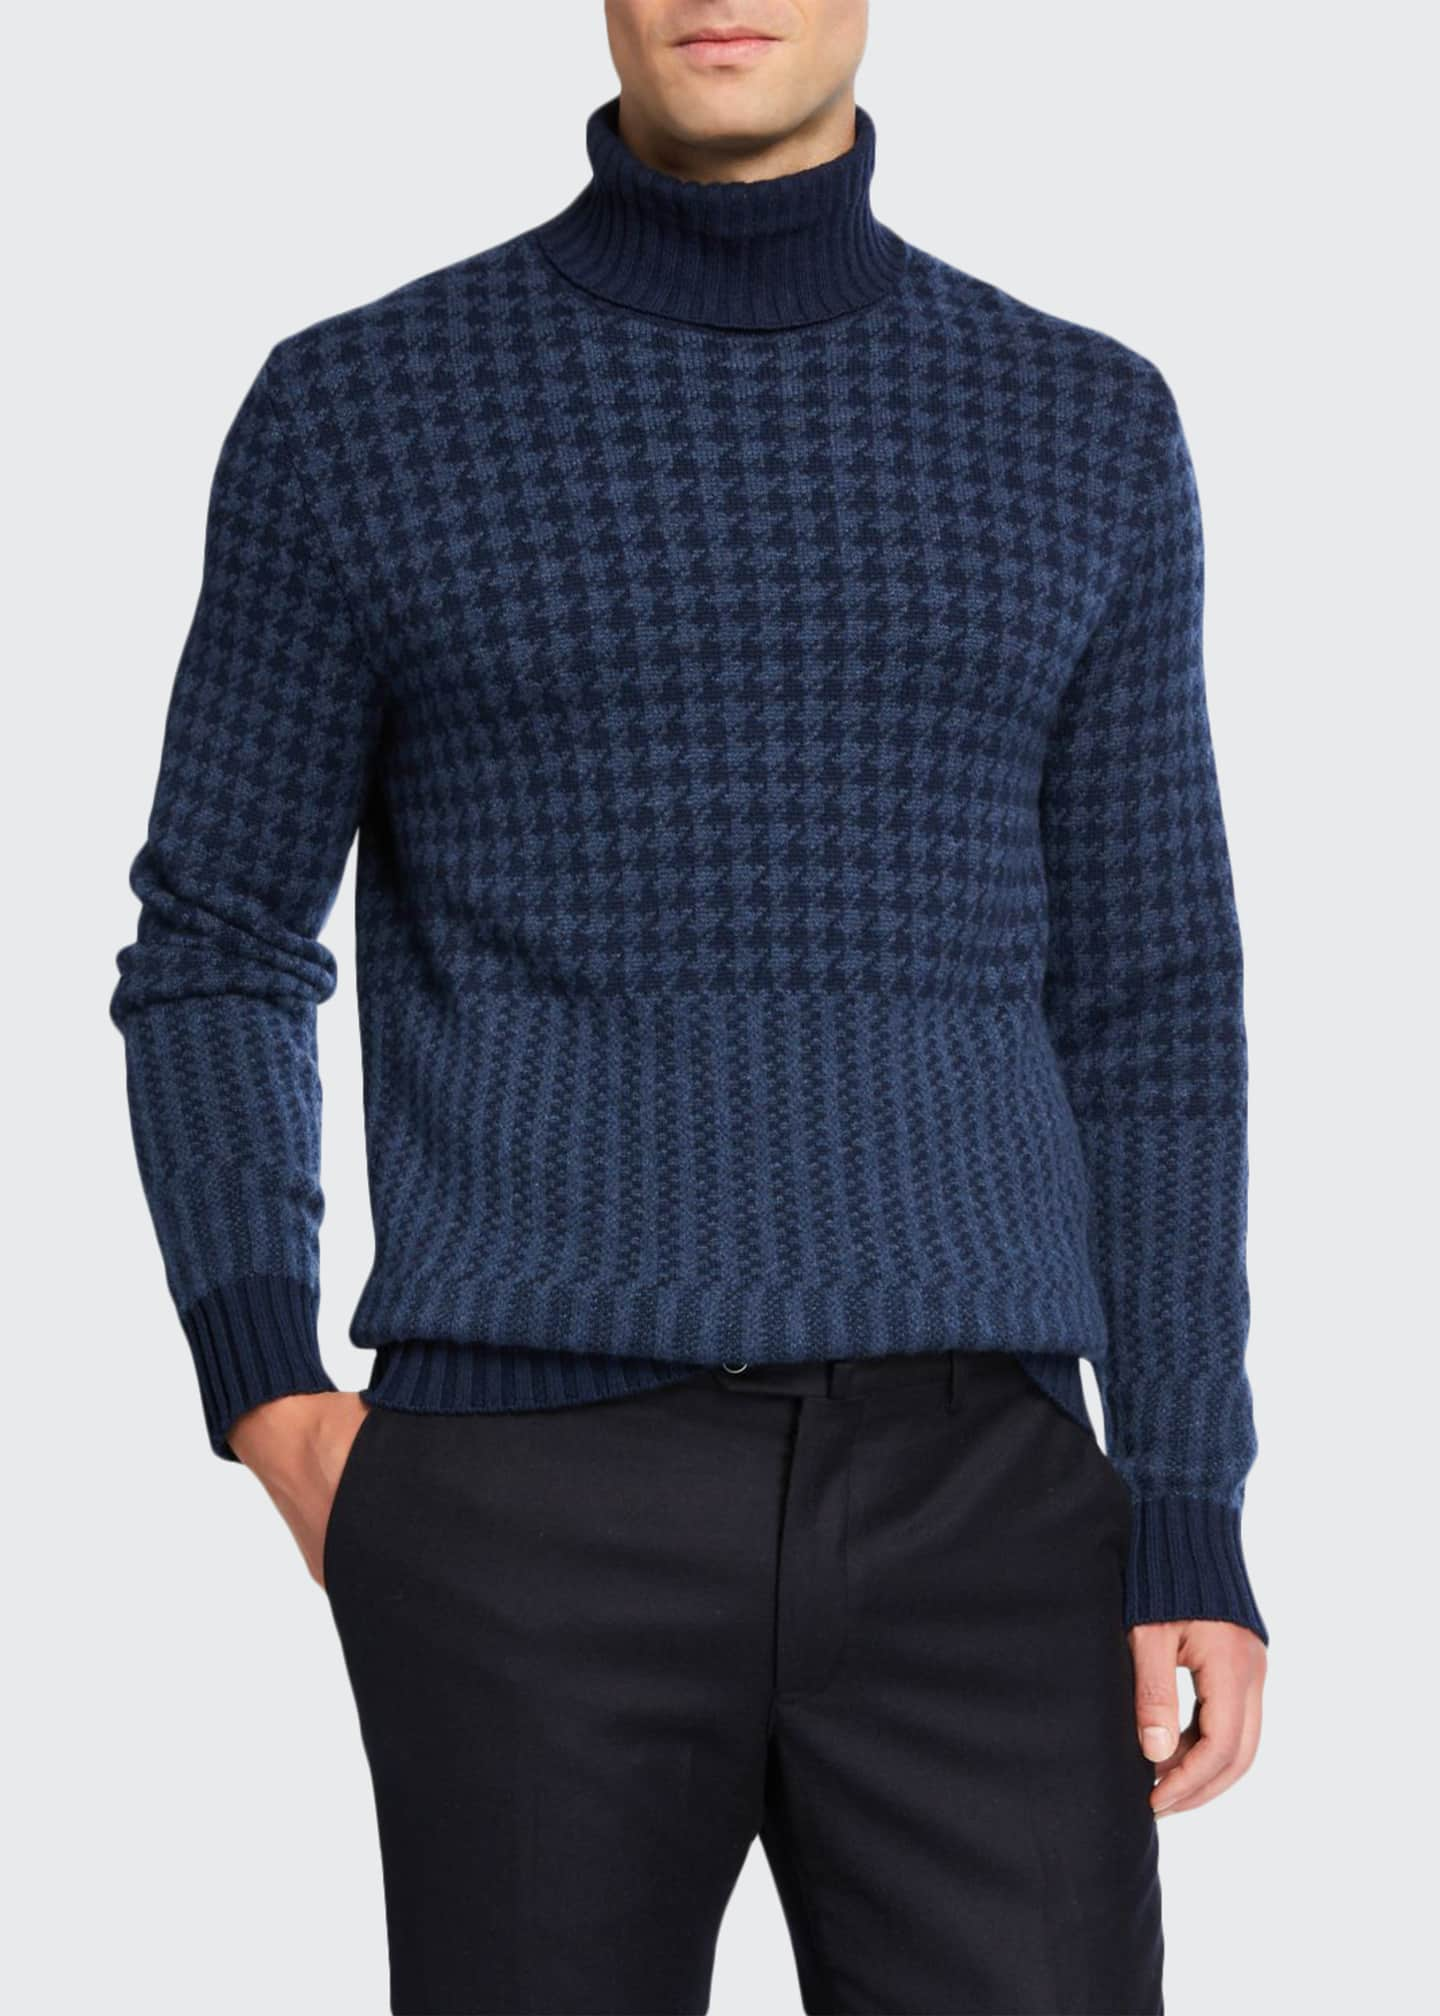 Loro Piana Men's Cabled Herringbone Cashmere Turtleneck Sweater